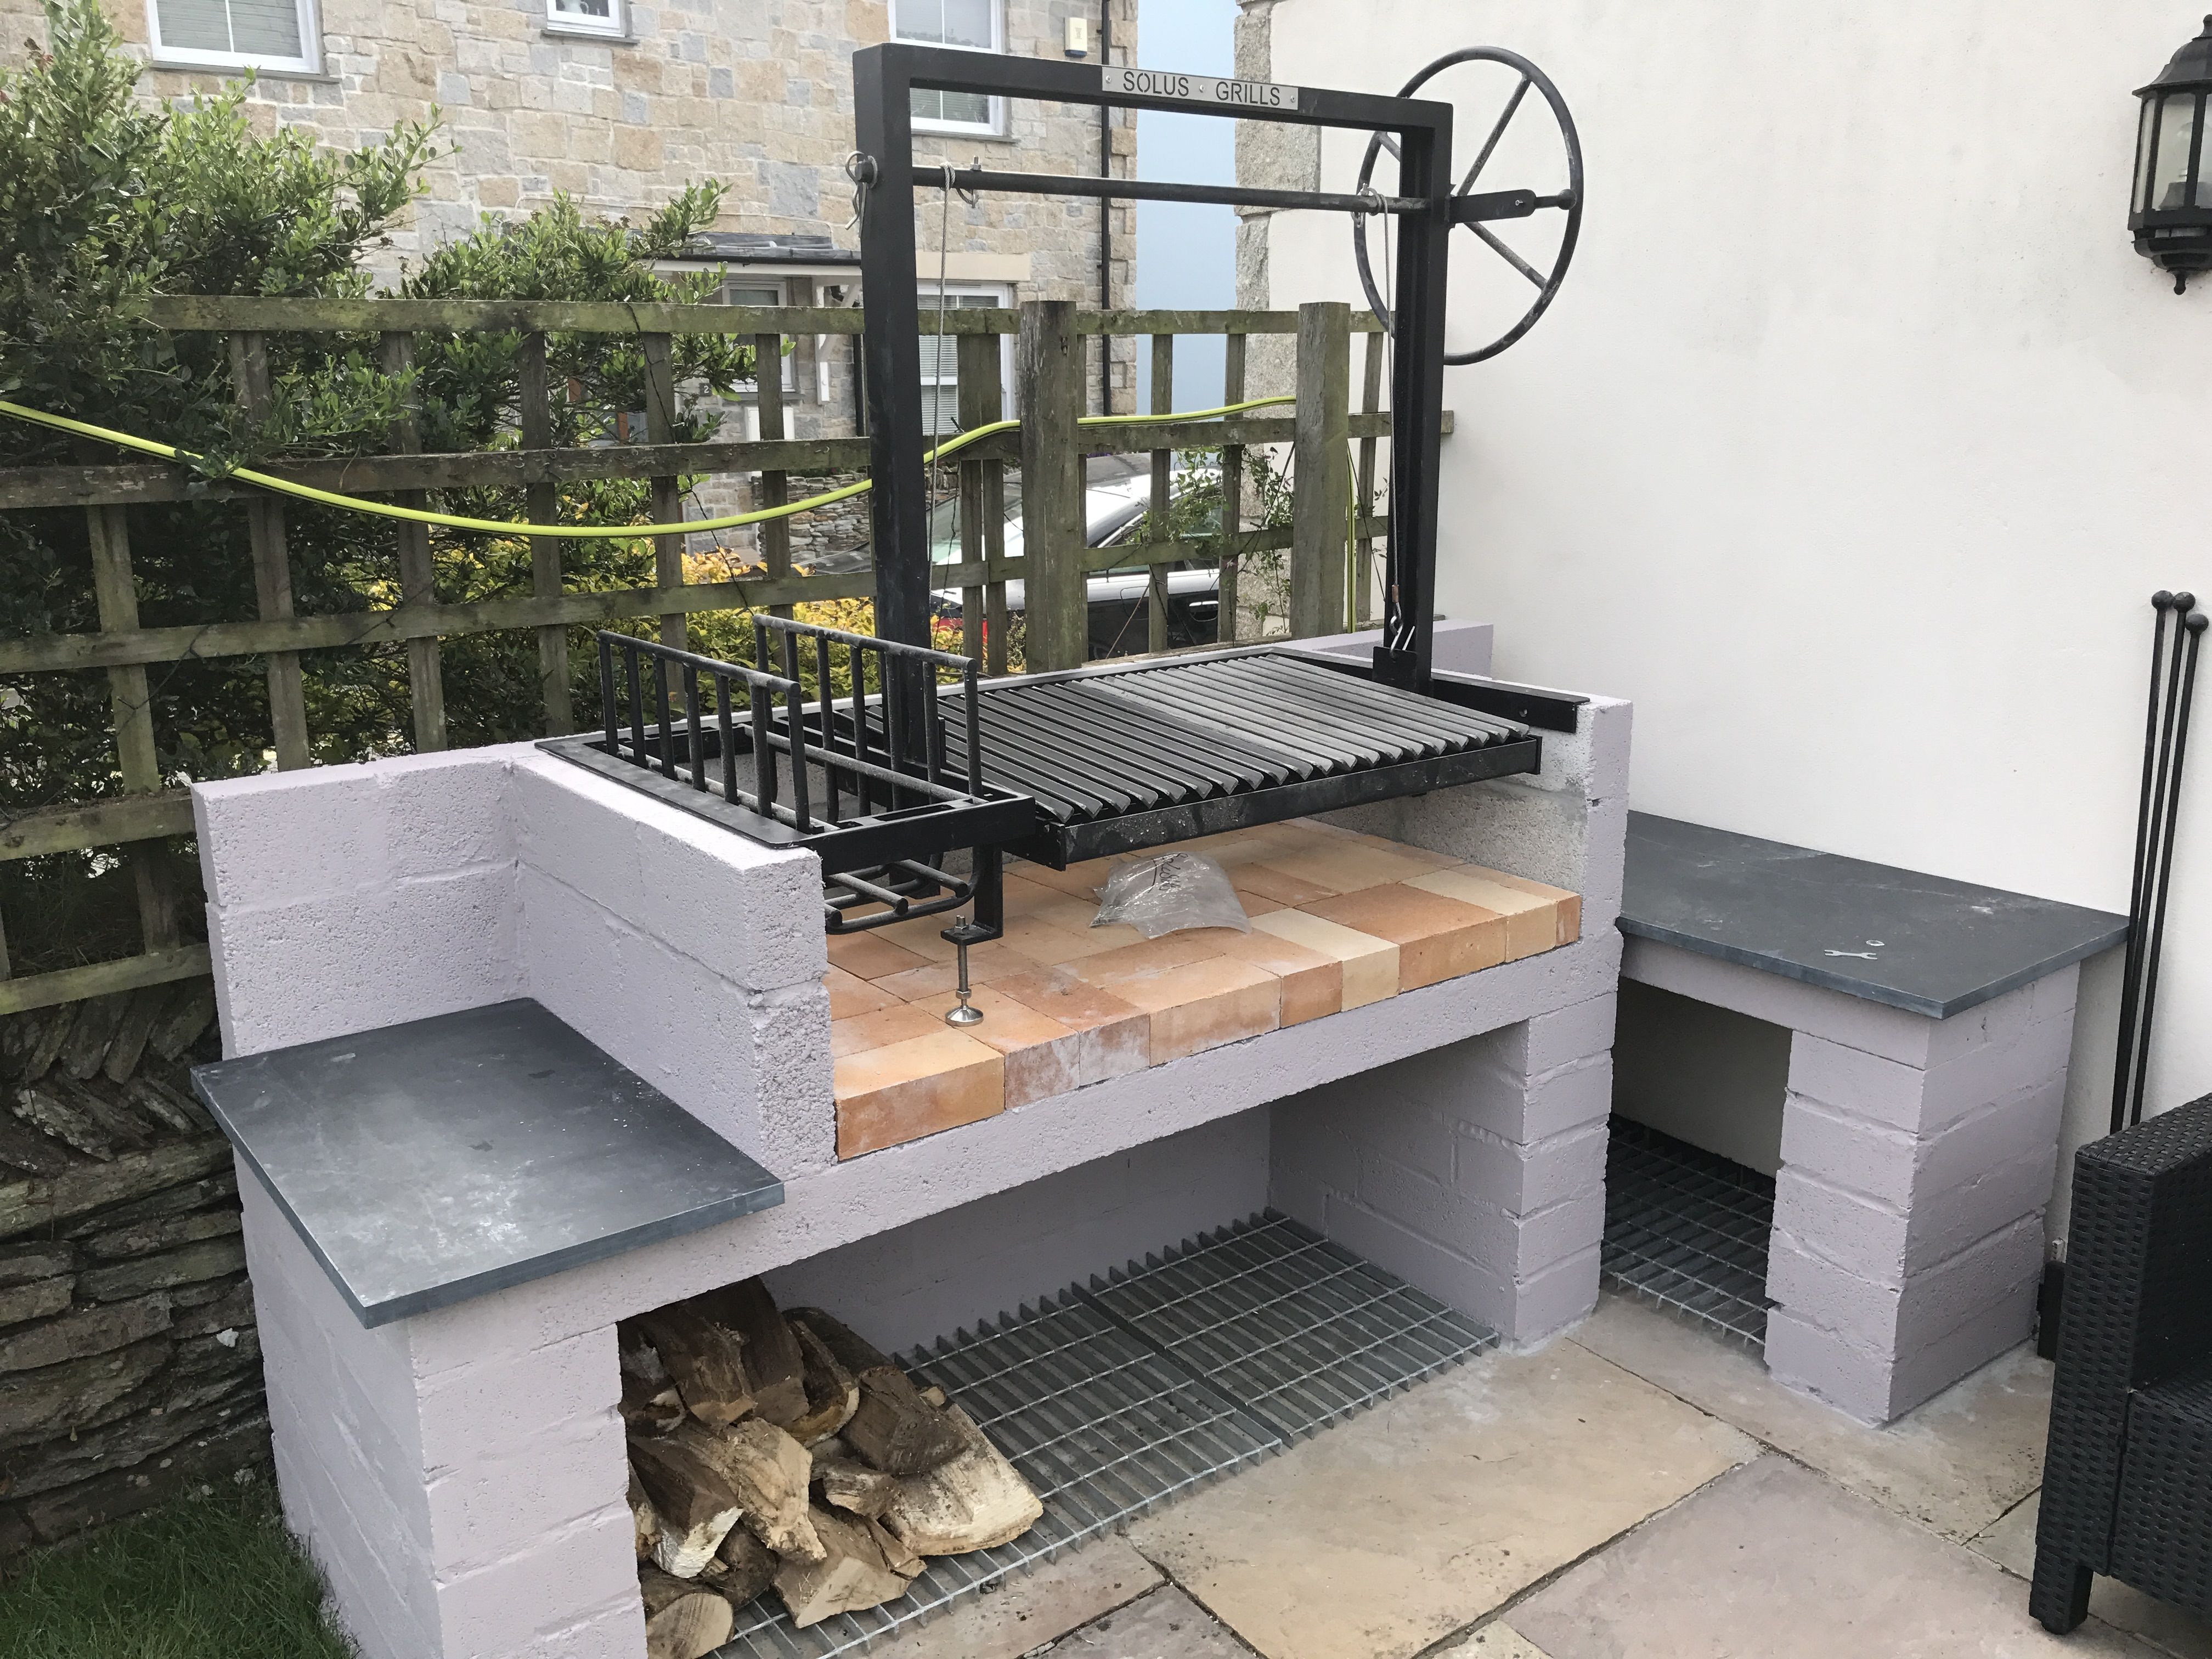 Getting There Cornish Slate Outdoor Bbq Kitchen Backyard Grilling Bbq Grill Design